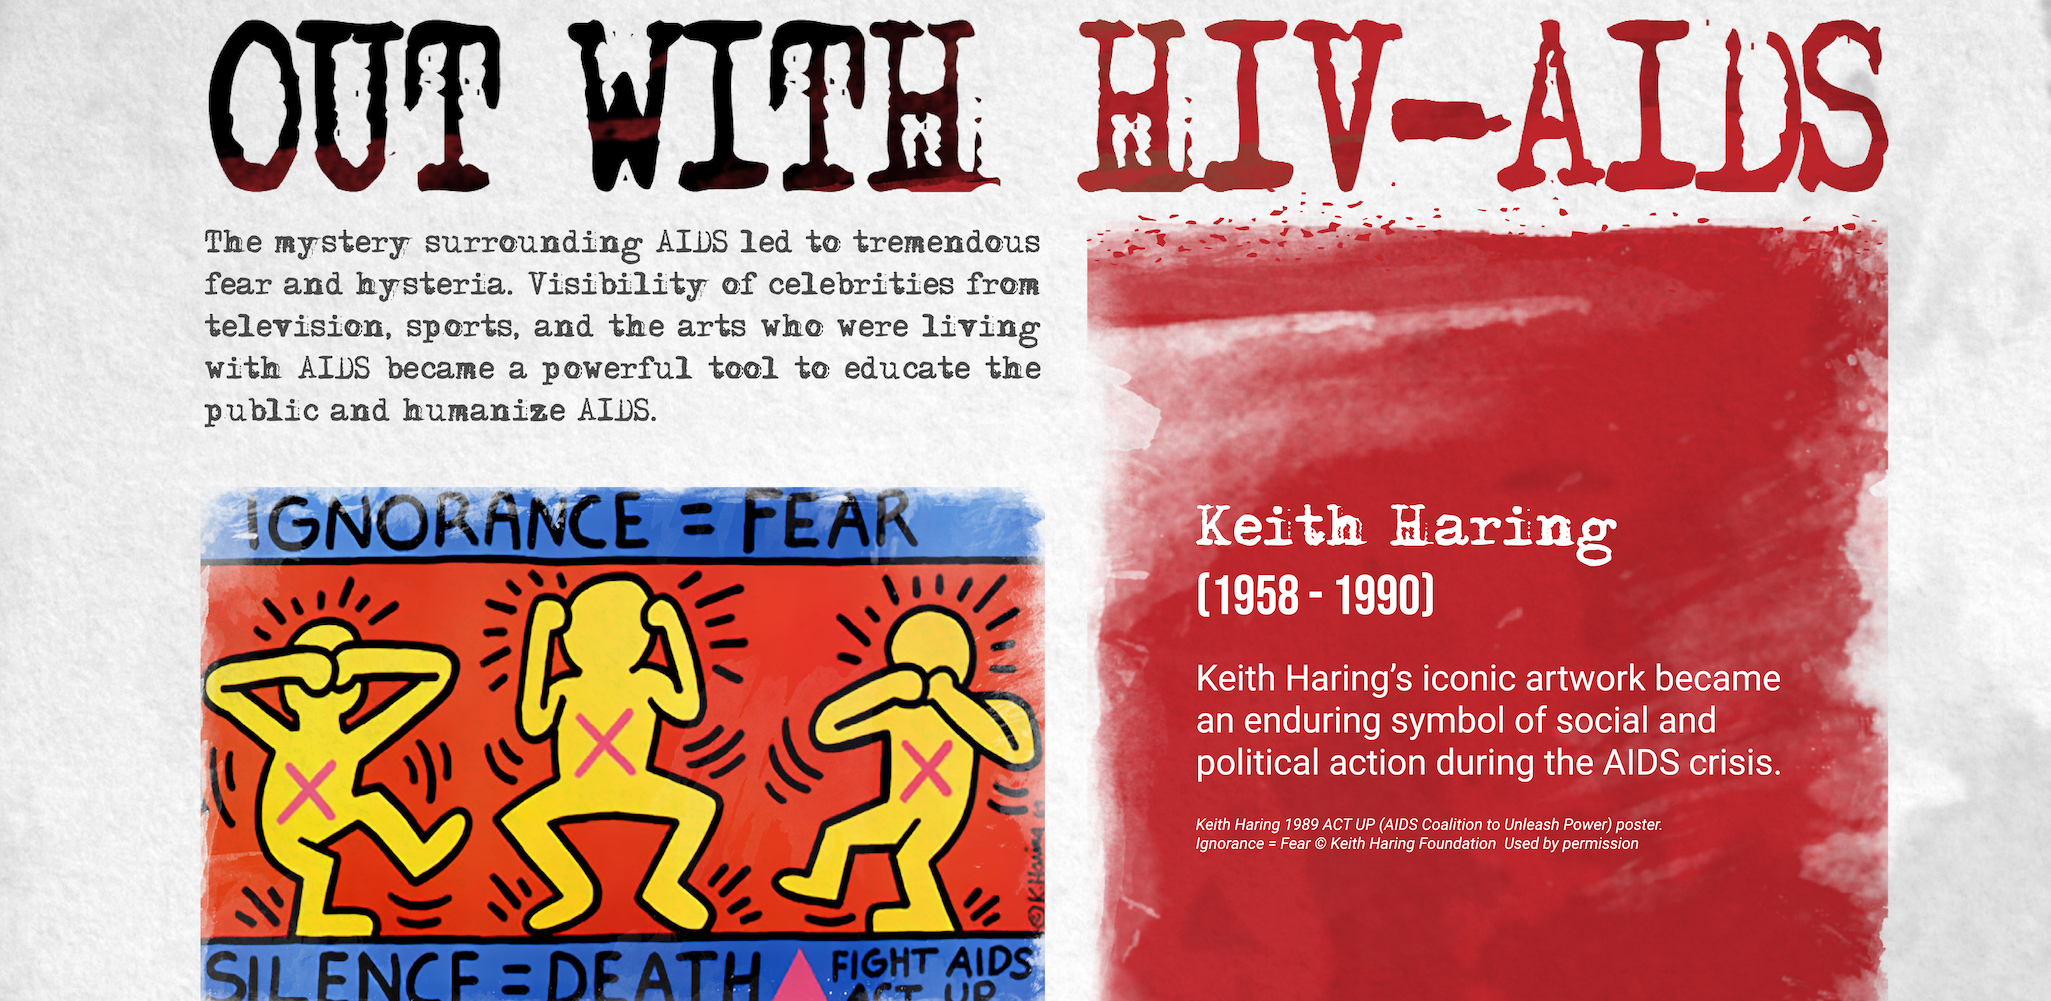 OUT with HIV/AIDS case study cover image